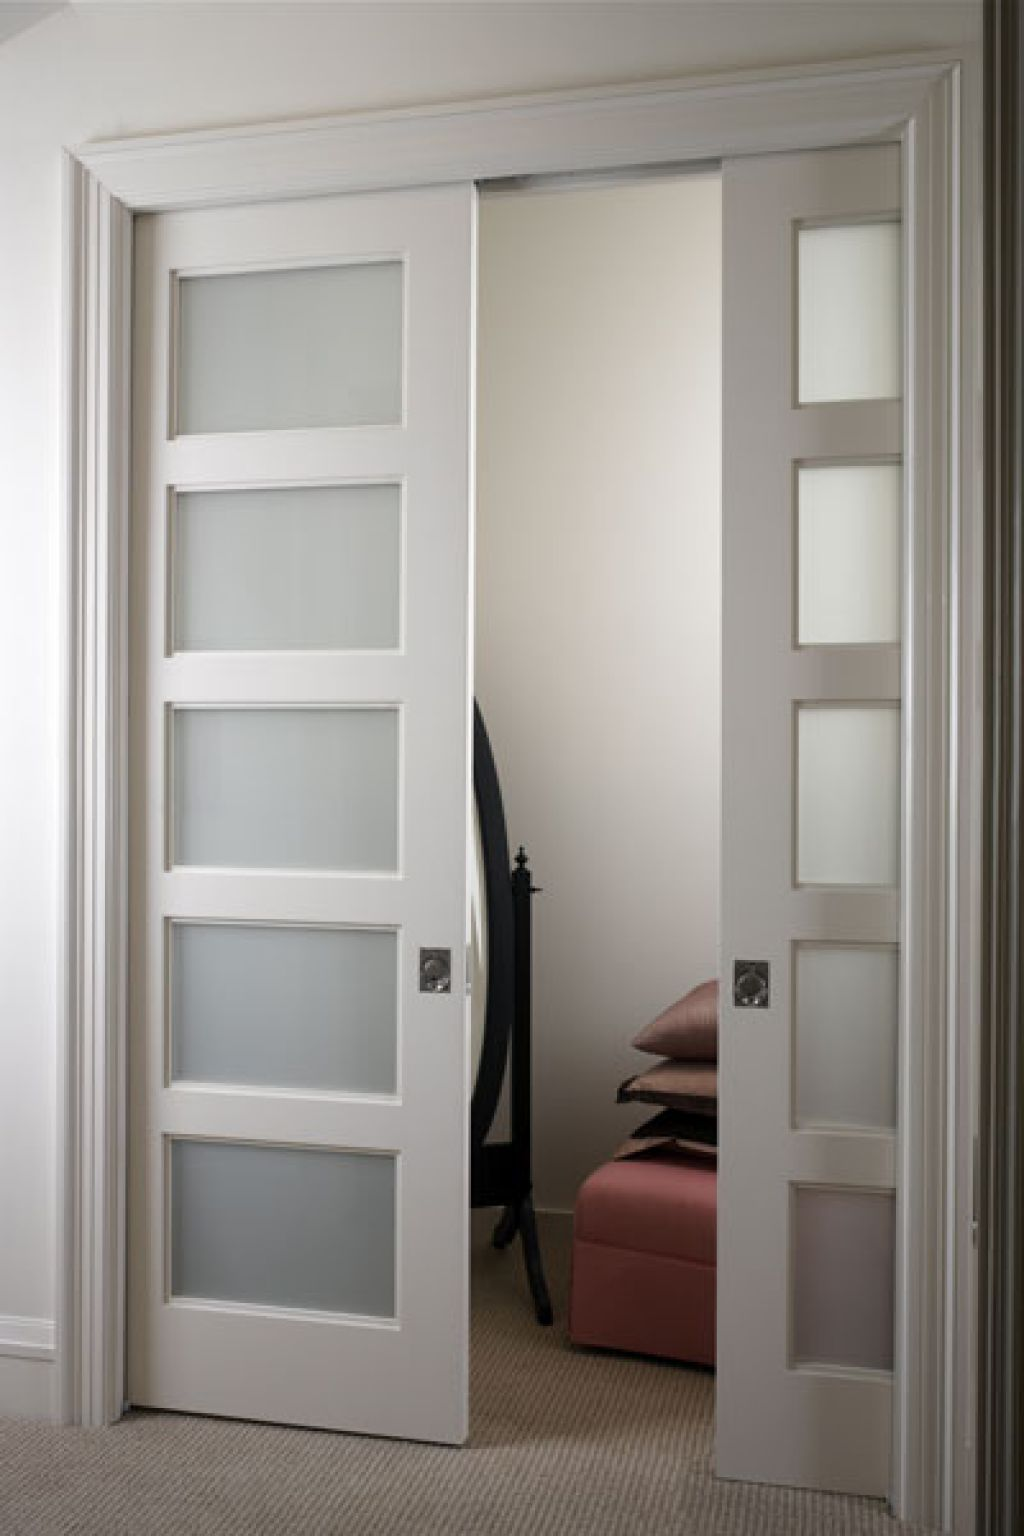 Bathroom pocket doors - This 7 Commercial Pocket Door Designs Will Give A Different Touch